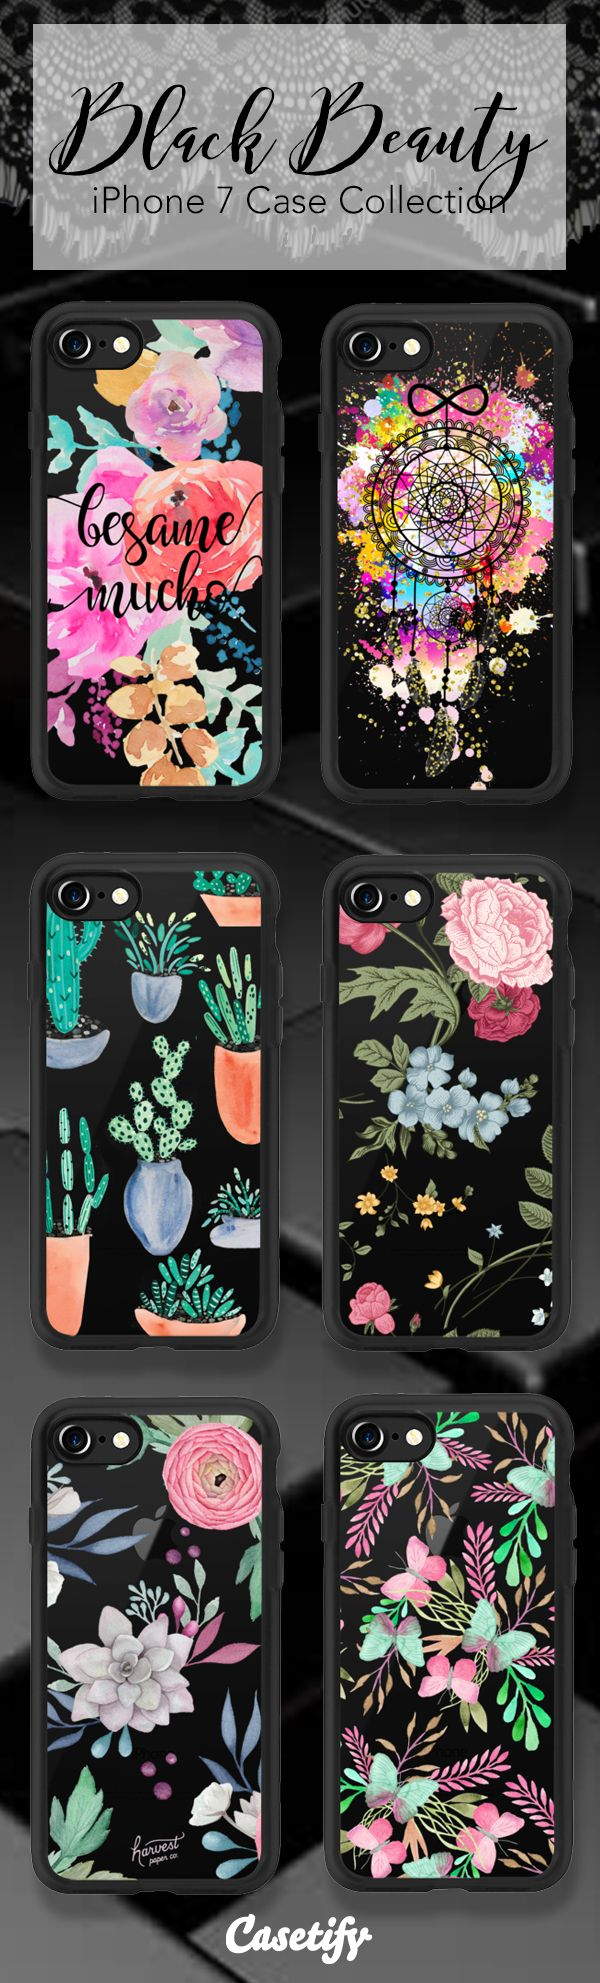 Jet Black - Shop these iPhone 7 case here >> https://www.casetify.com/collections/black_beauty#/